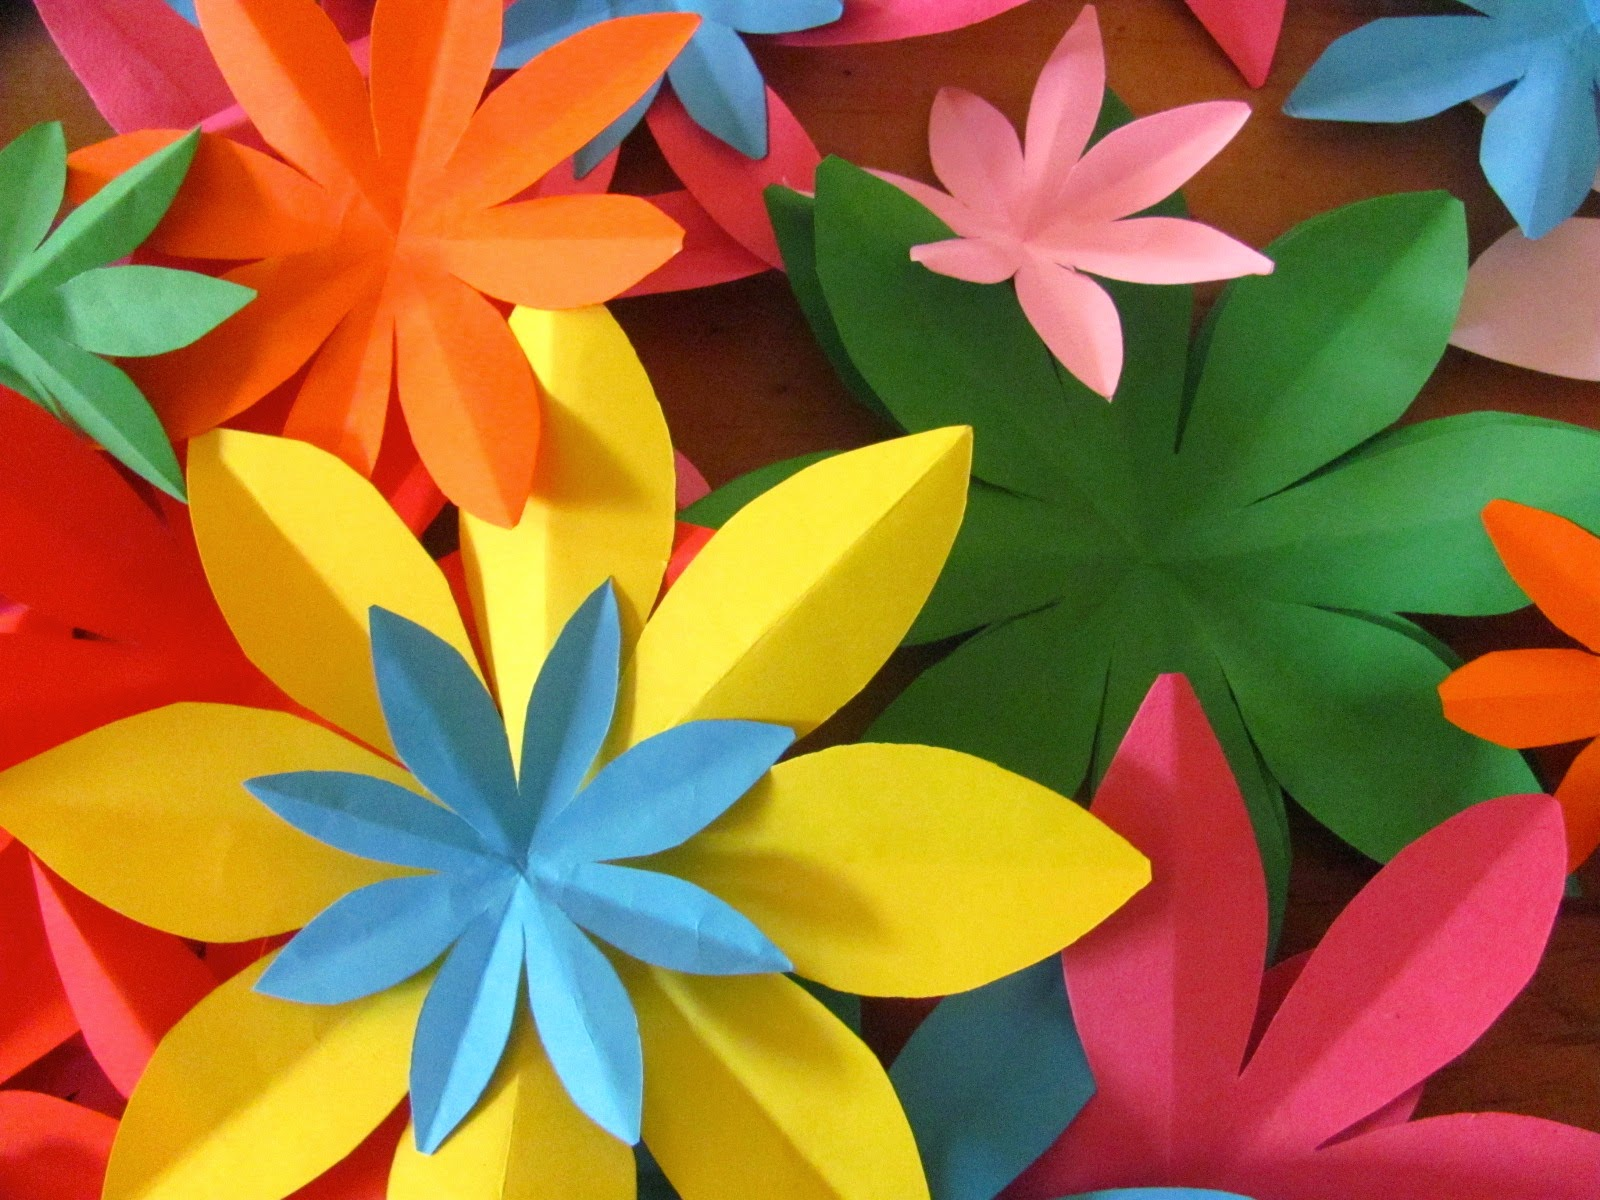 Make your own zoo easy paper flowers more flowers made from paper this time and really quick to do good cutting practice for kids too and its fun opening up your folded snipped piece of mightylinksfo